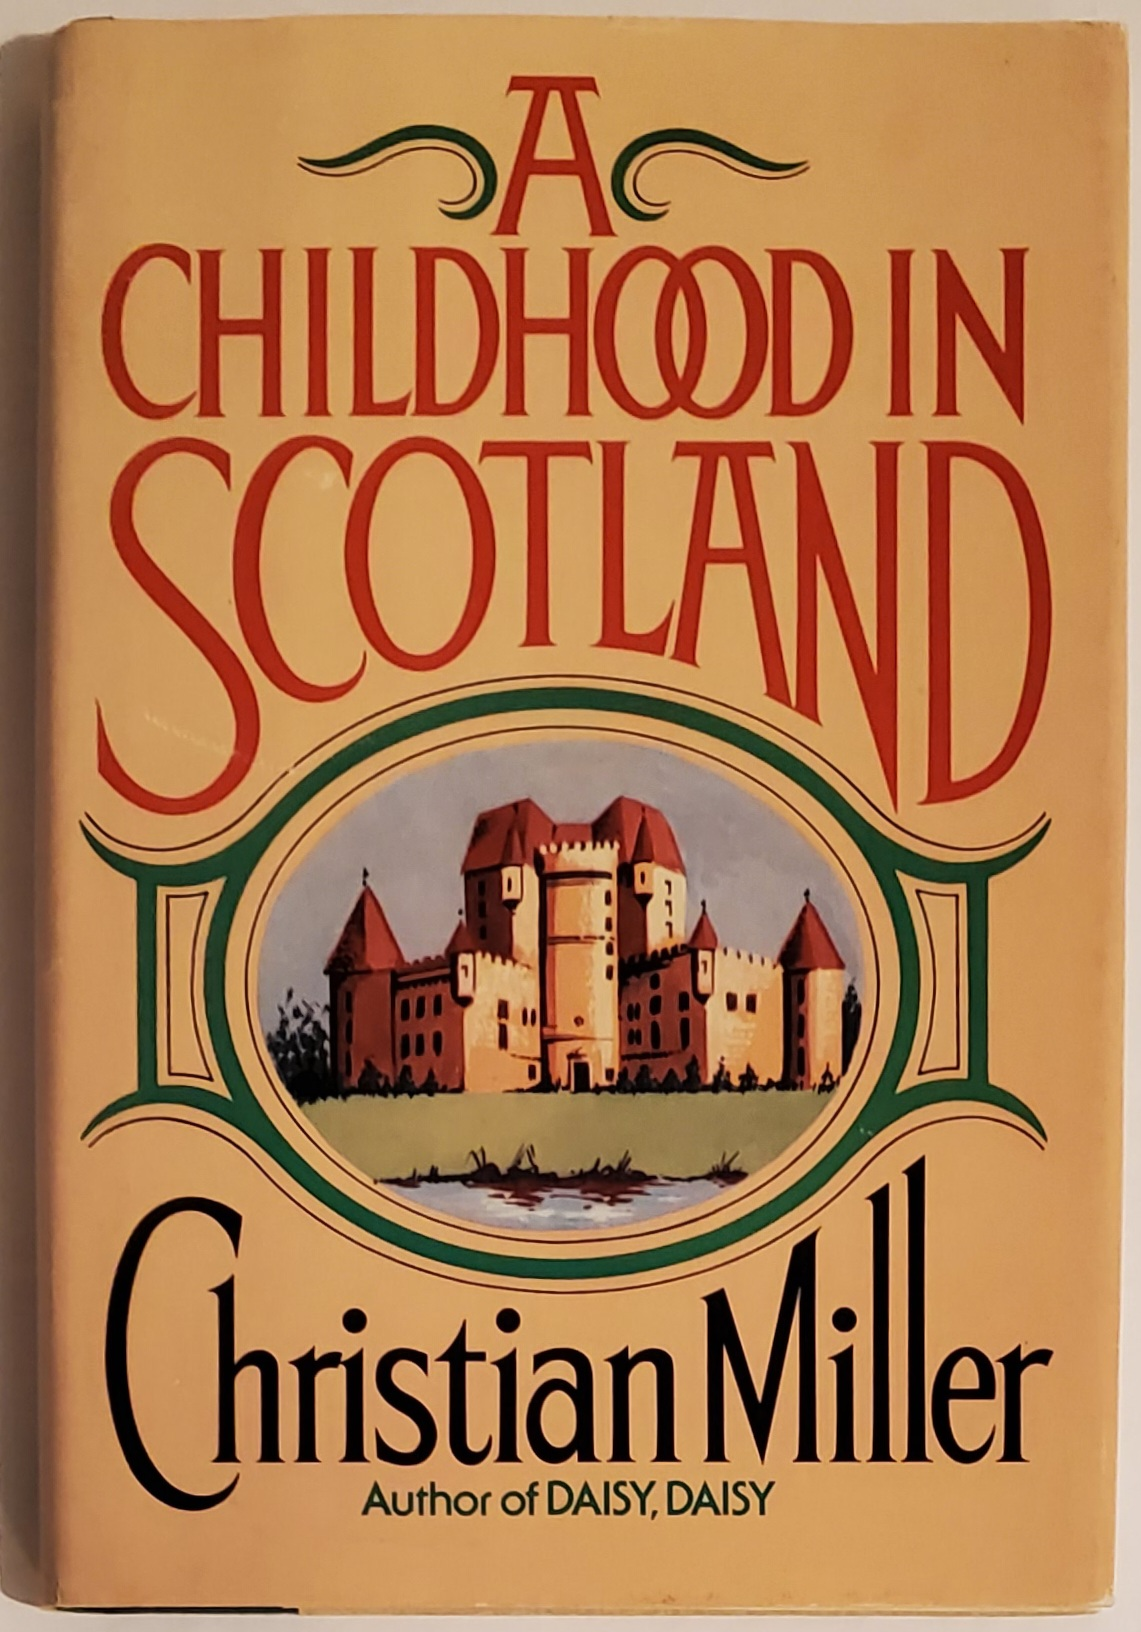 A CHILDHOOD IN SCOTLAND. Illustrated by Ray Evans. Christian Miller.